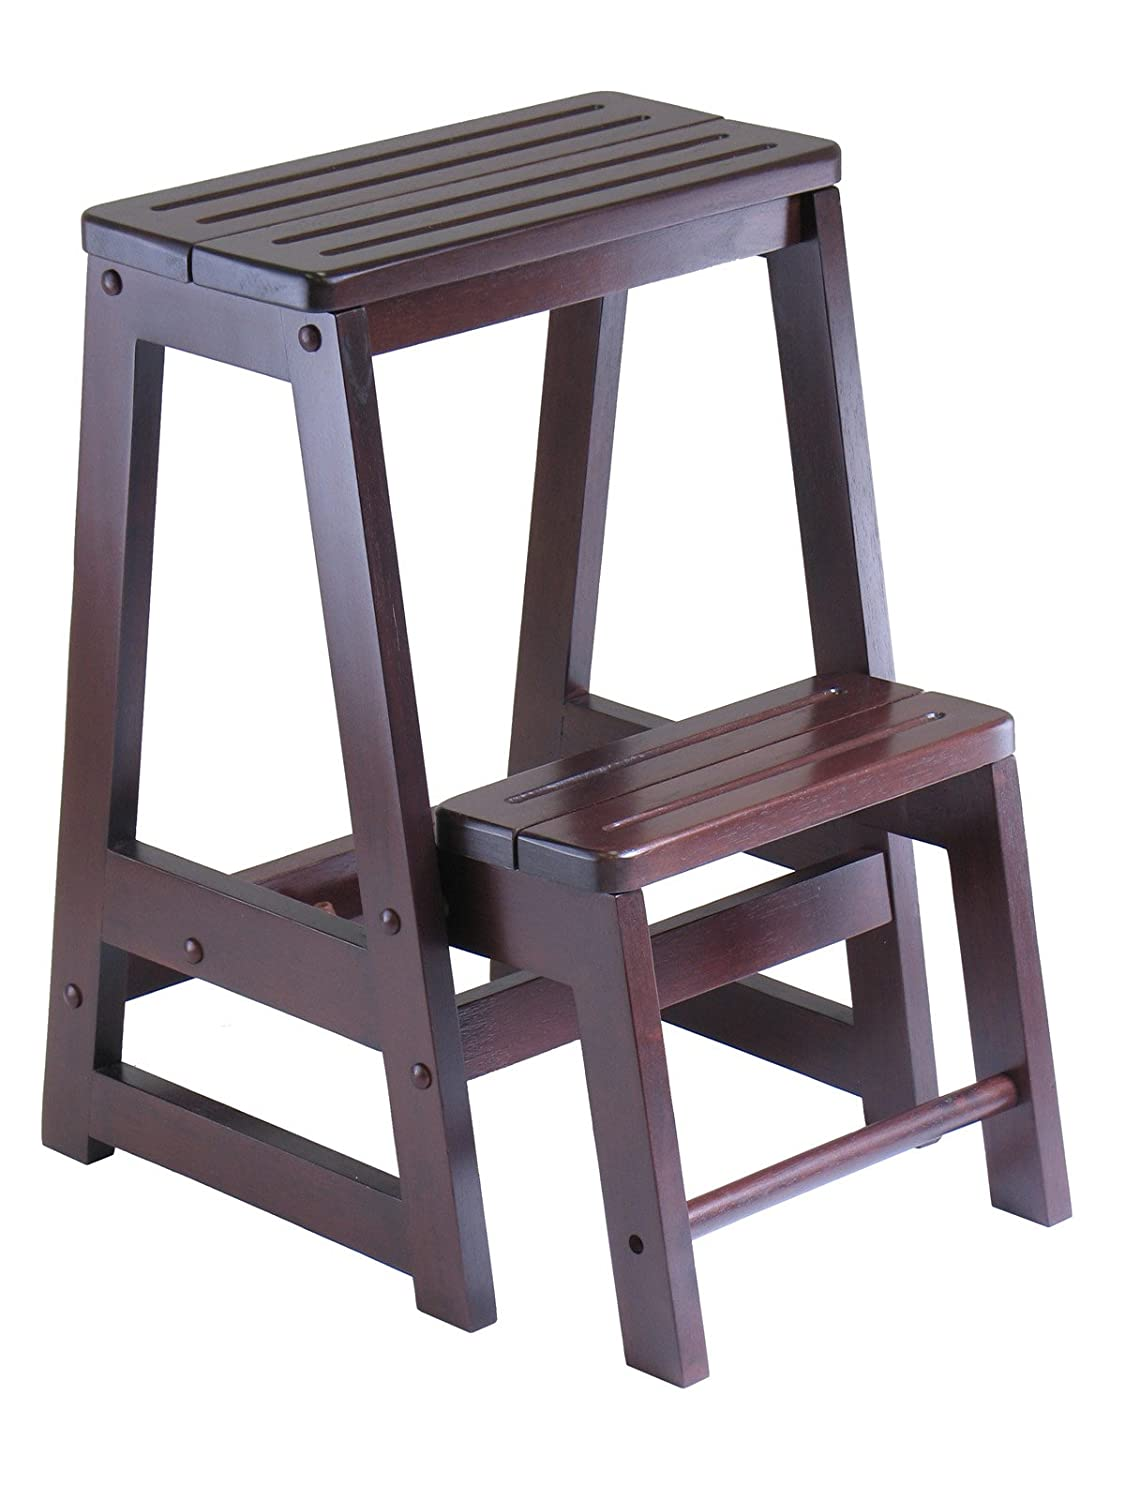 chair stools wooden salon chairs ebay winsome wood step stool antique walnut new free